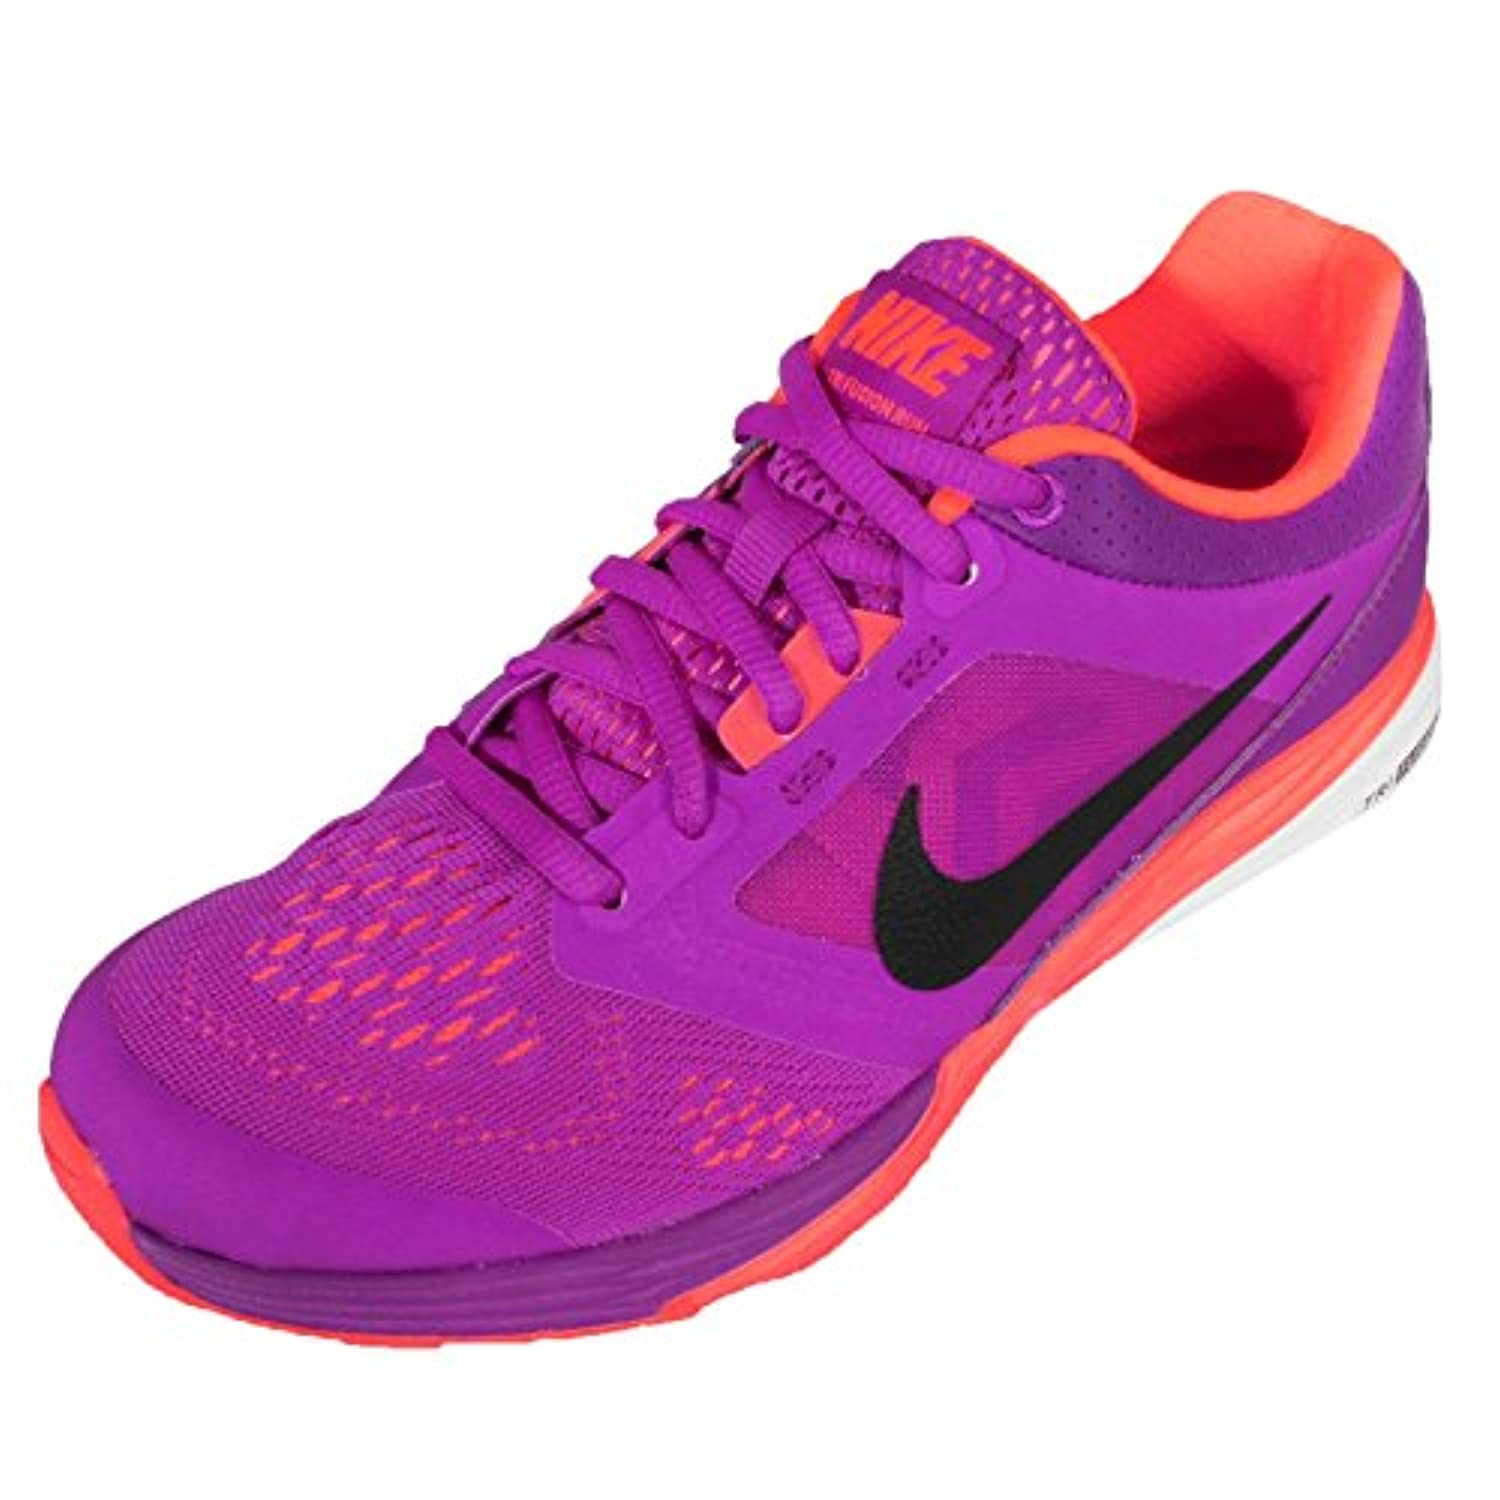 wholesale dealer 88ed4 a0d8c ... order nike womens wmns tri fusion run msl vivid purple black hyper  orange ed2d8 0448c